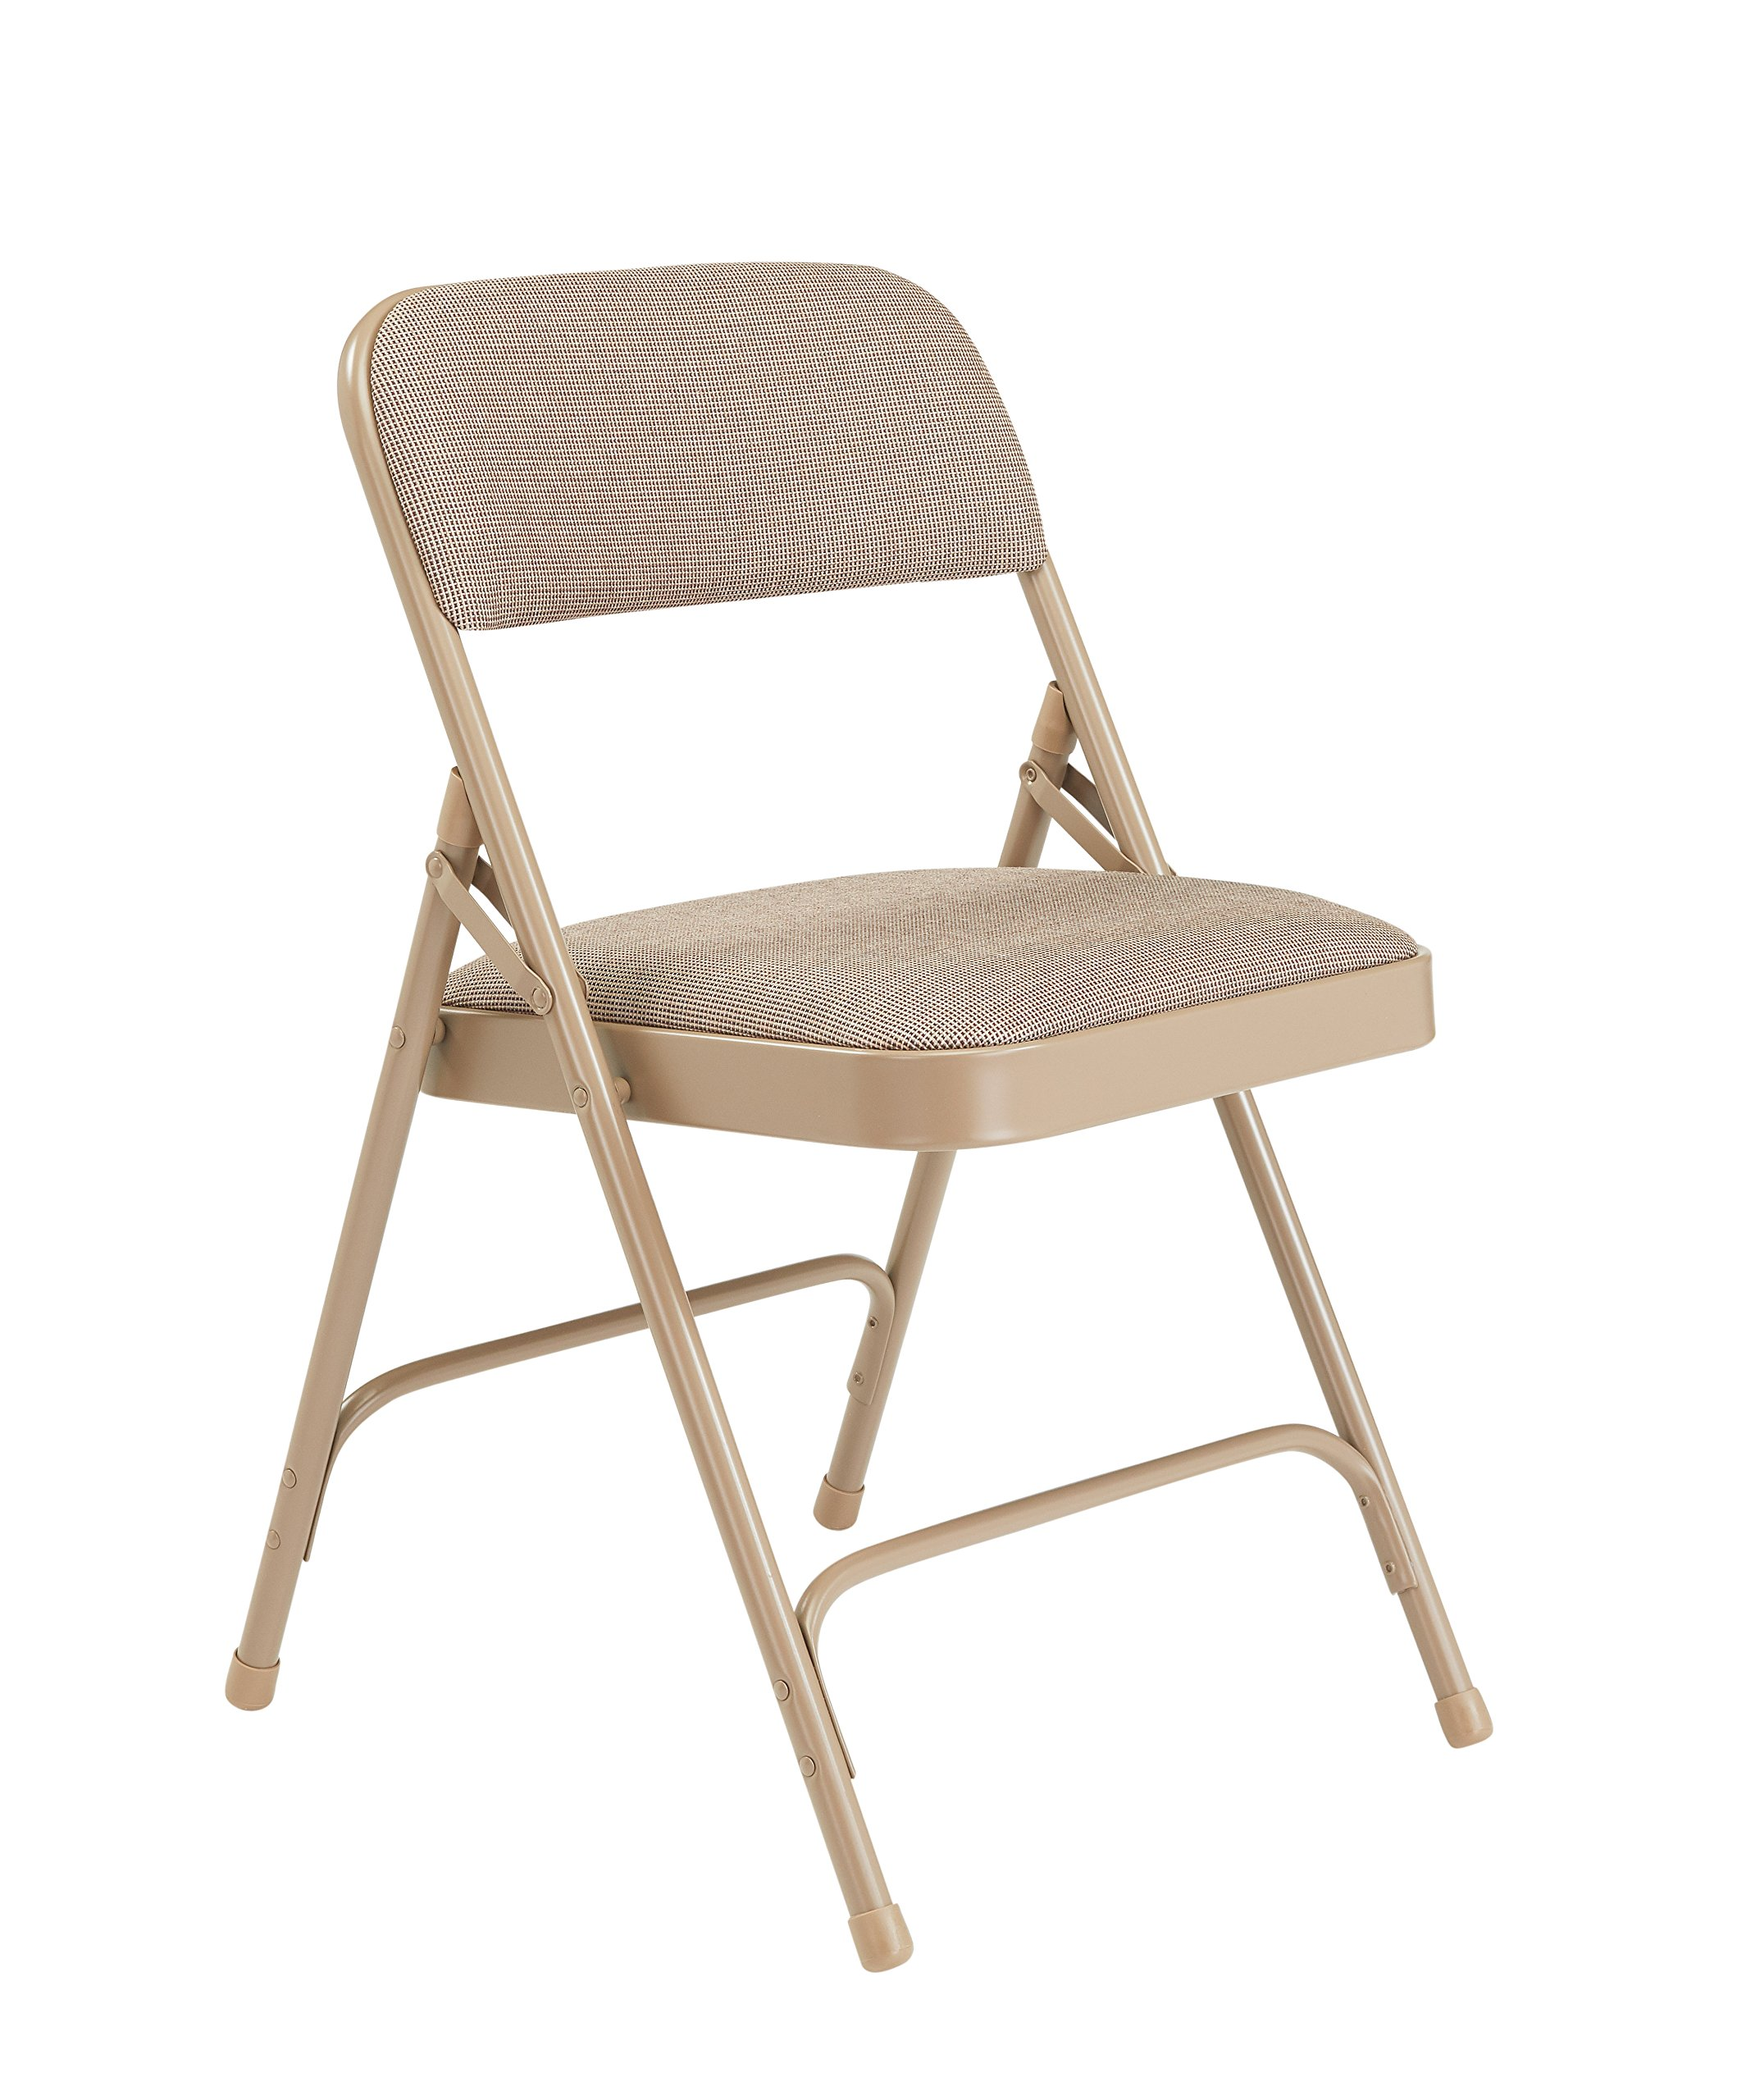 National Public Seating 2201 Series Steel Frame Upholstered Premium Fabric Seat and Back Folding Chair with Double Brace, 480 lbs Capacity, Cafe Beige/Beige (Carton of 4) by National Public Seating